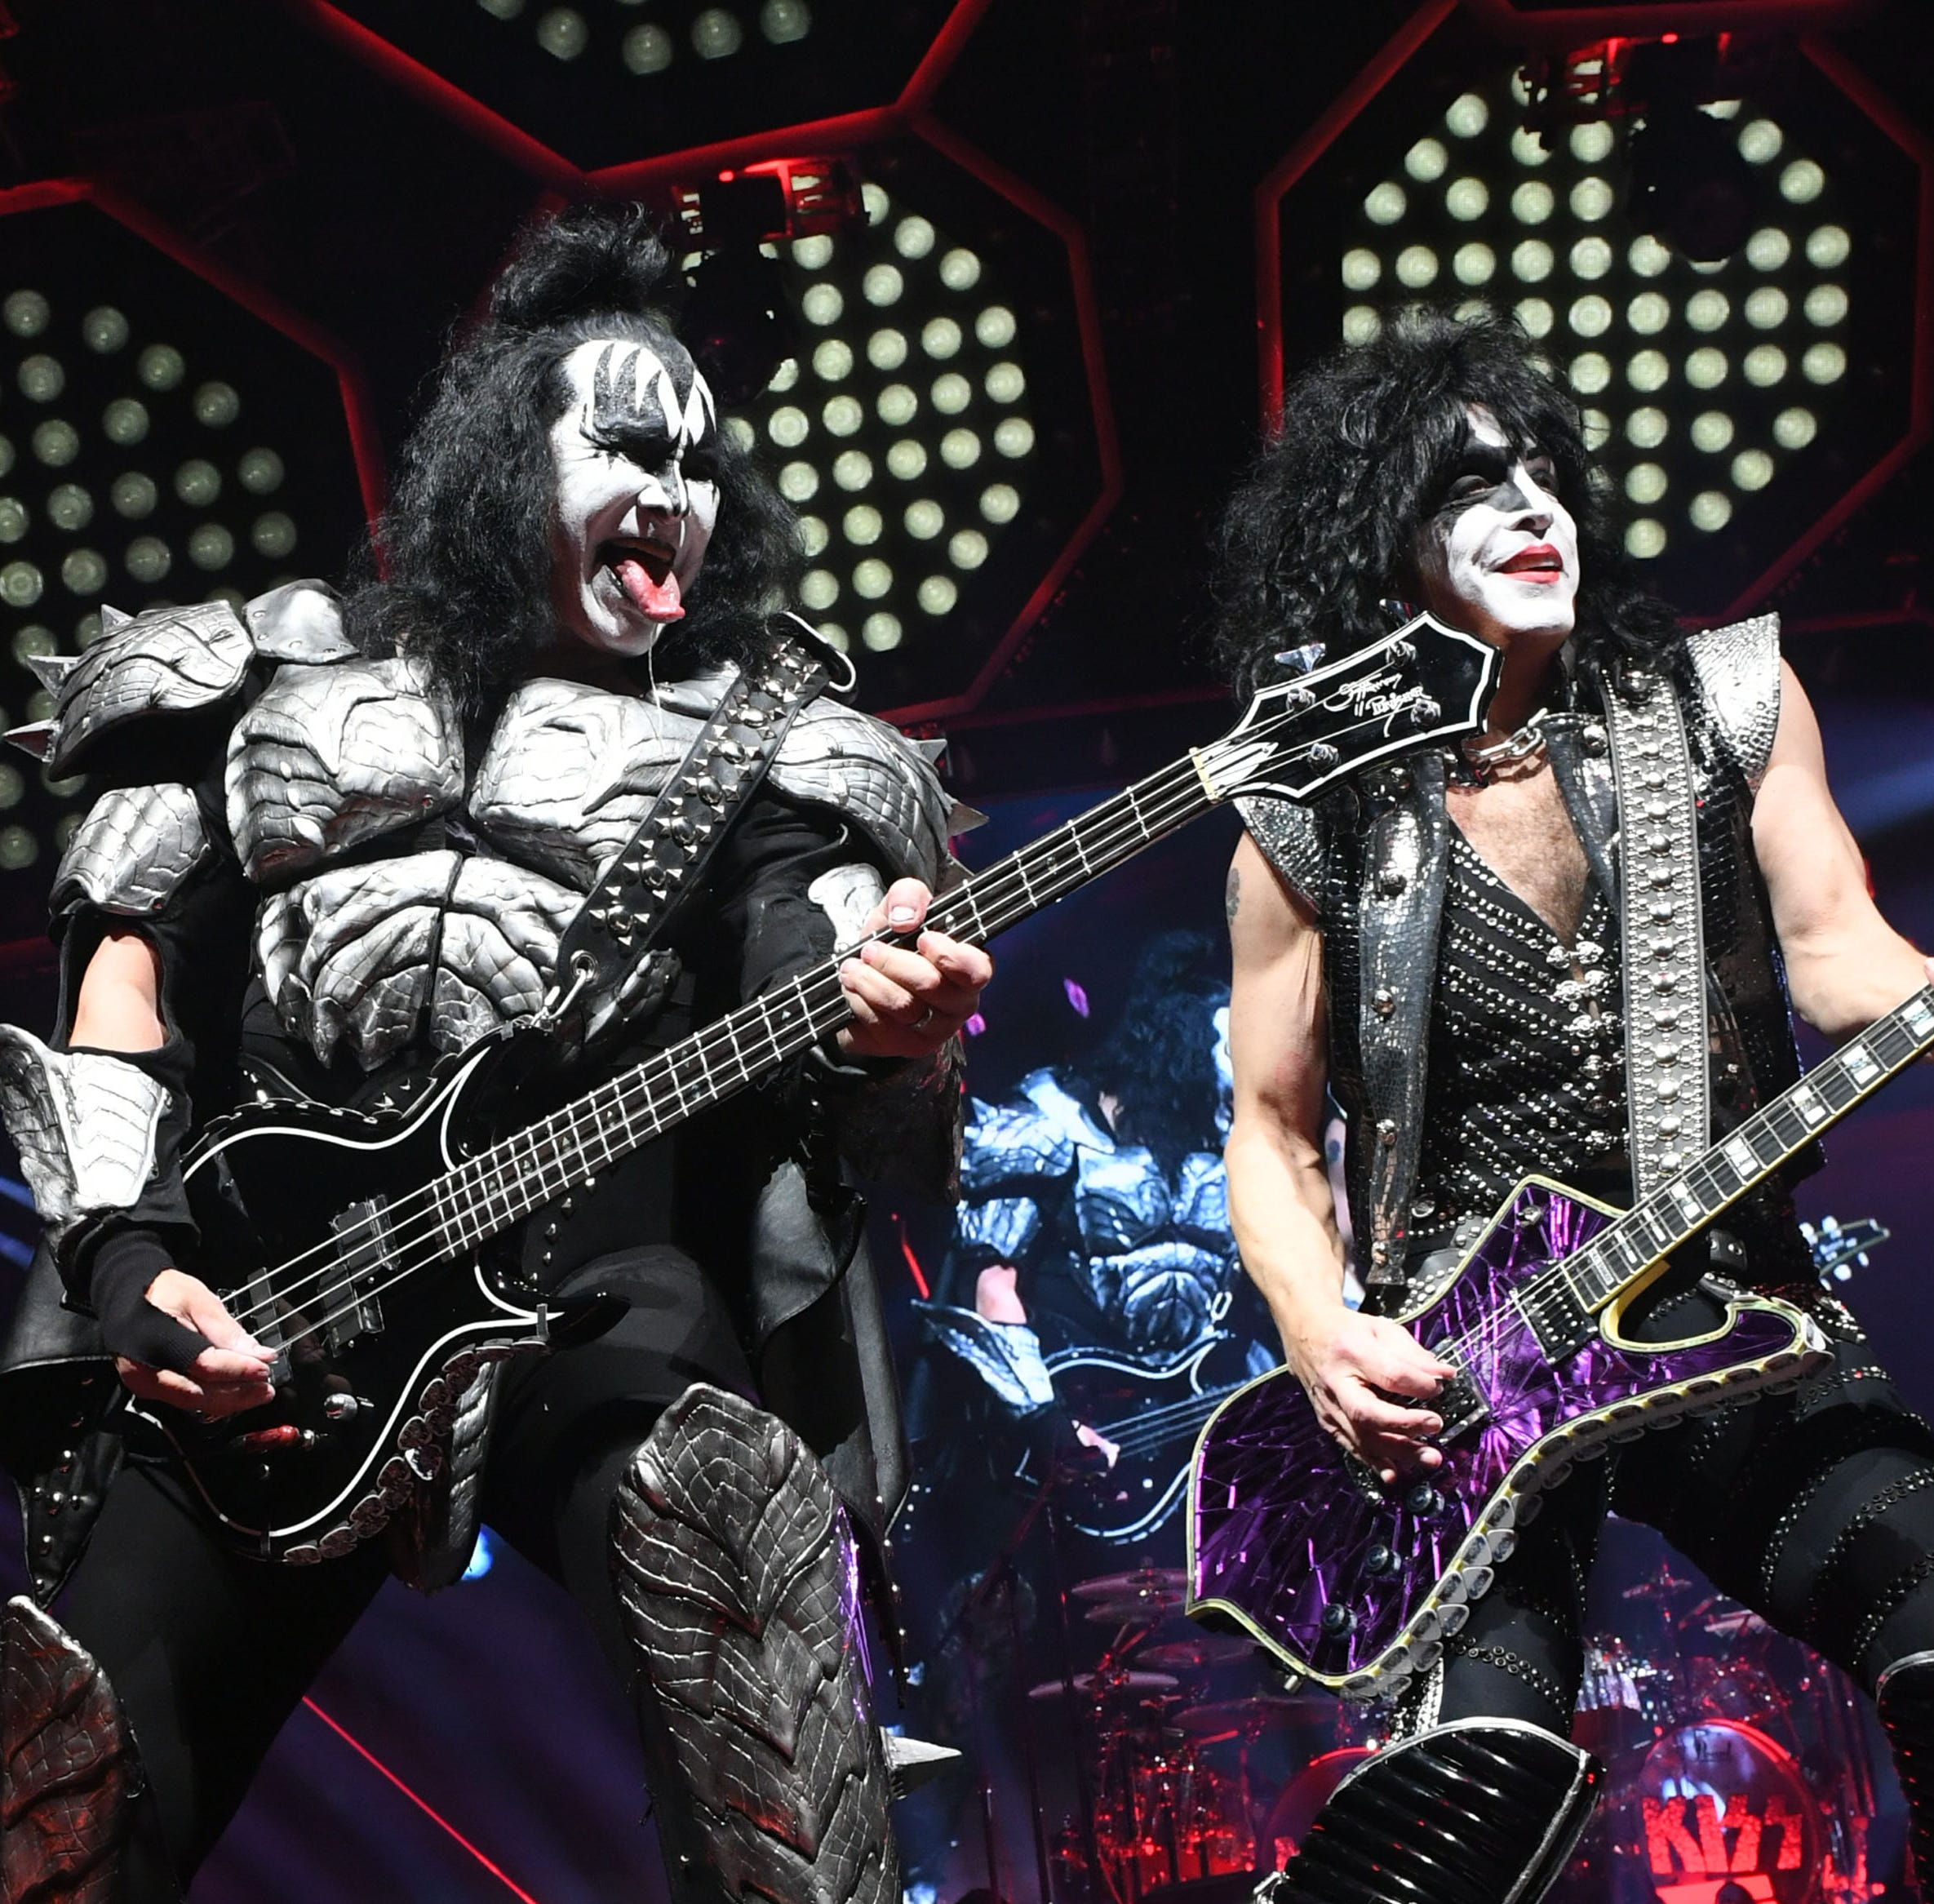 Kiss guitarist reflects on tour and why Detroit is still special to him